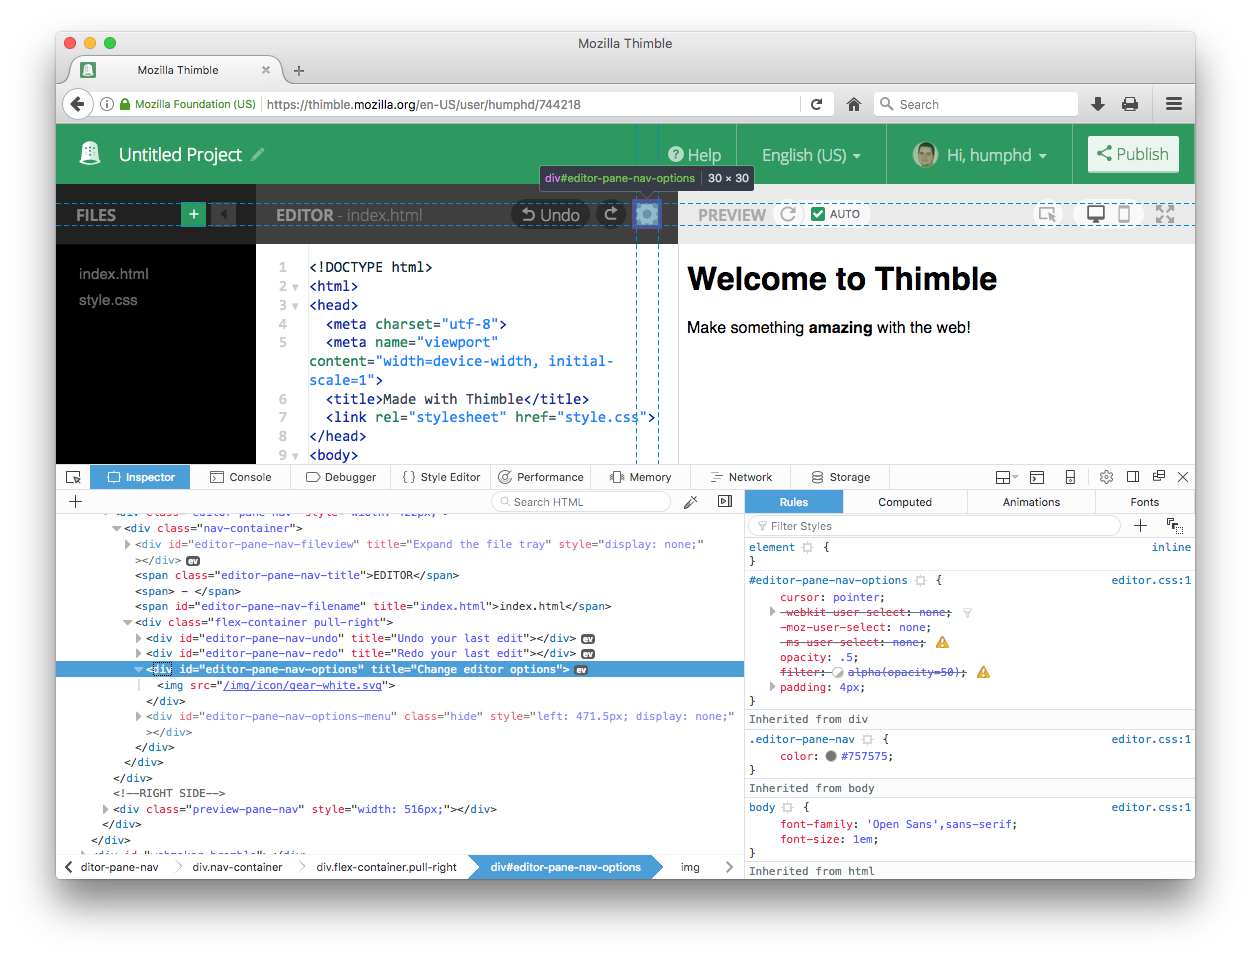 Fixing a Bug in Mozilla Thimble